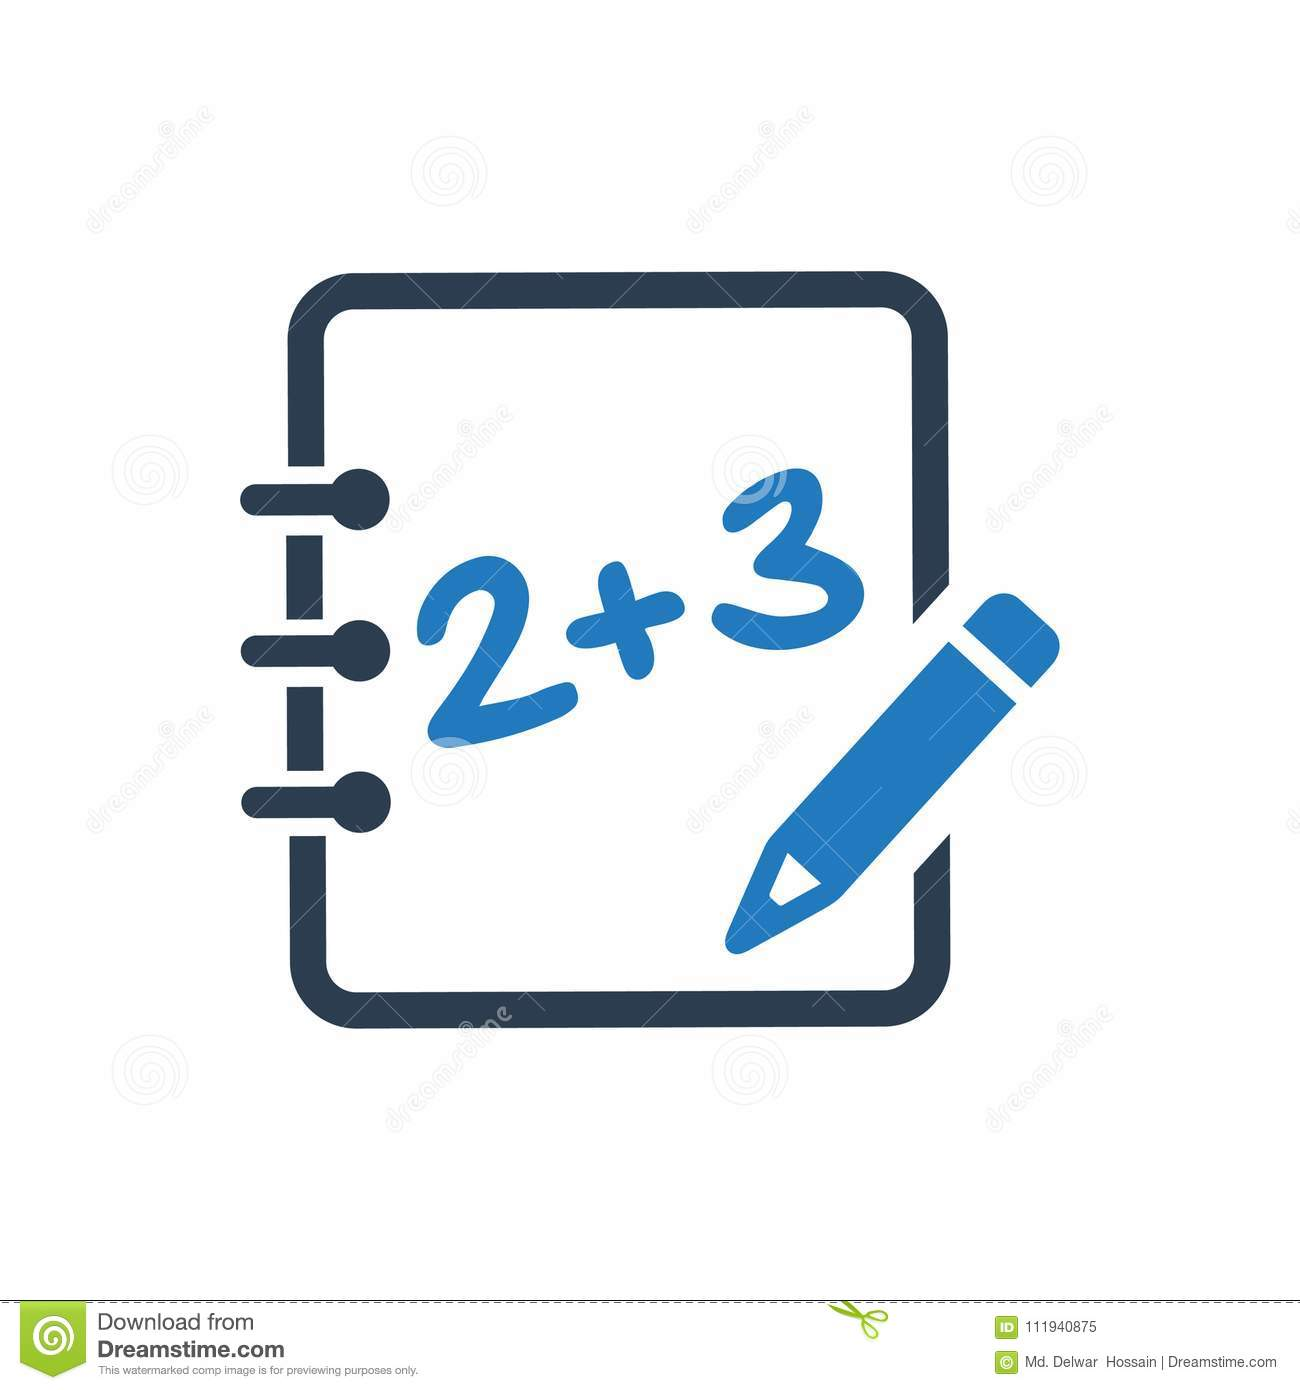 Math learning icon stock vector. Illustration of icon - 111940875